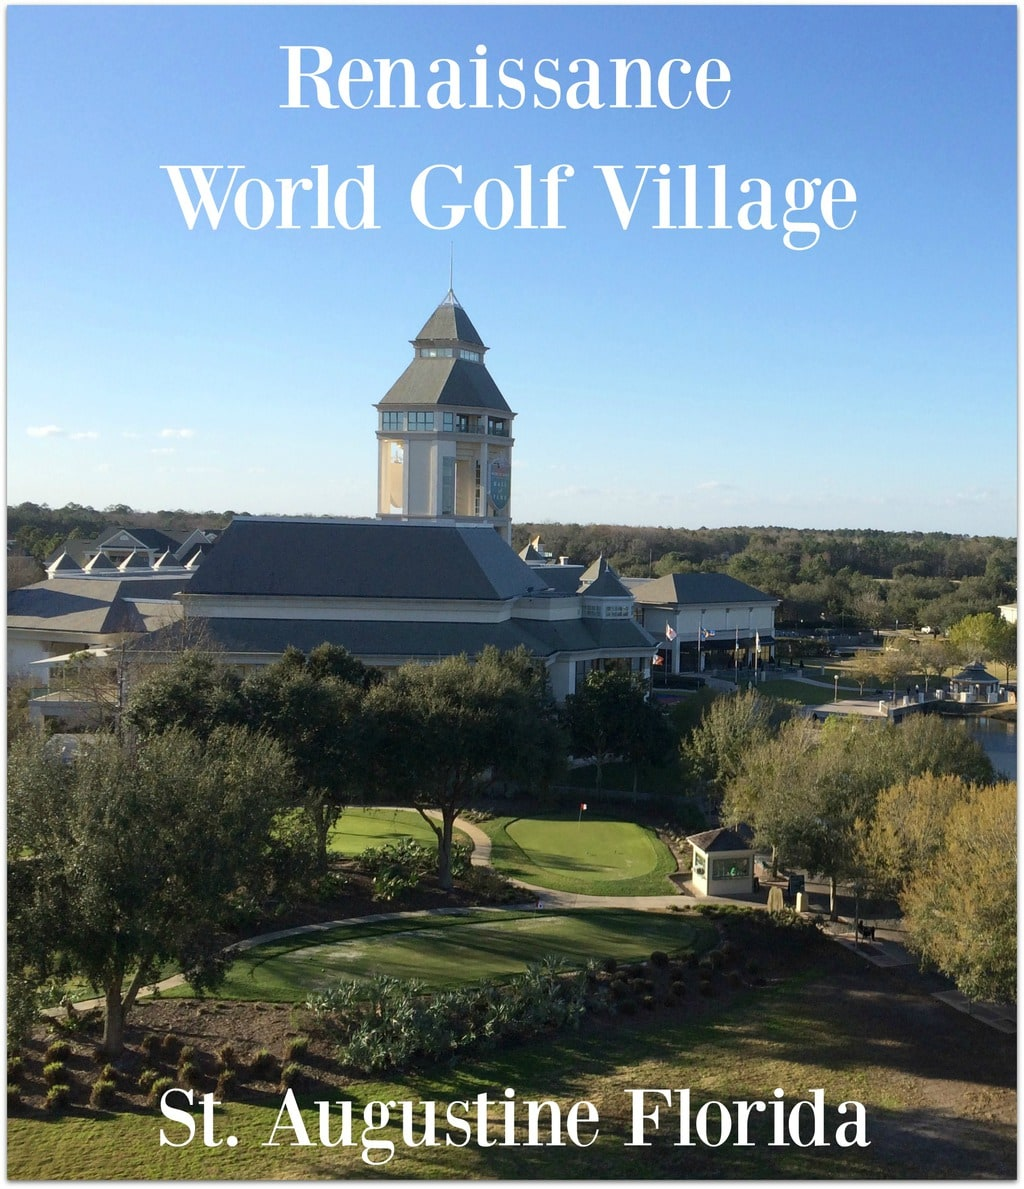 You'll find two Championship golf courses at the gorgeous Renaissance World Golf Village; the Slammer & Squire and the King & Bear. In fact, the King & Bear is the only golf course in the world that was co-designed by Jack Nicklaus and Arnold Palmer.